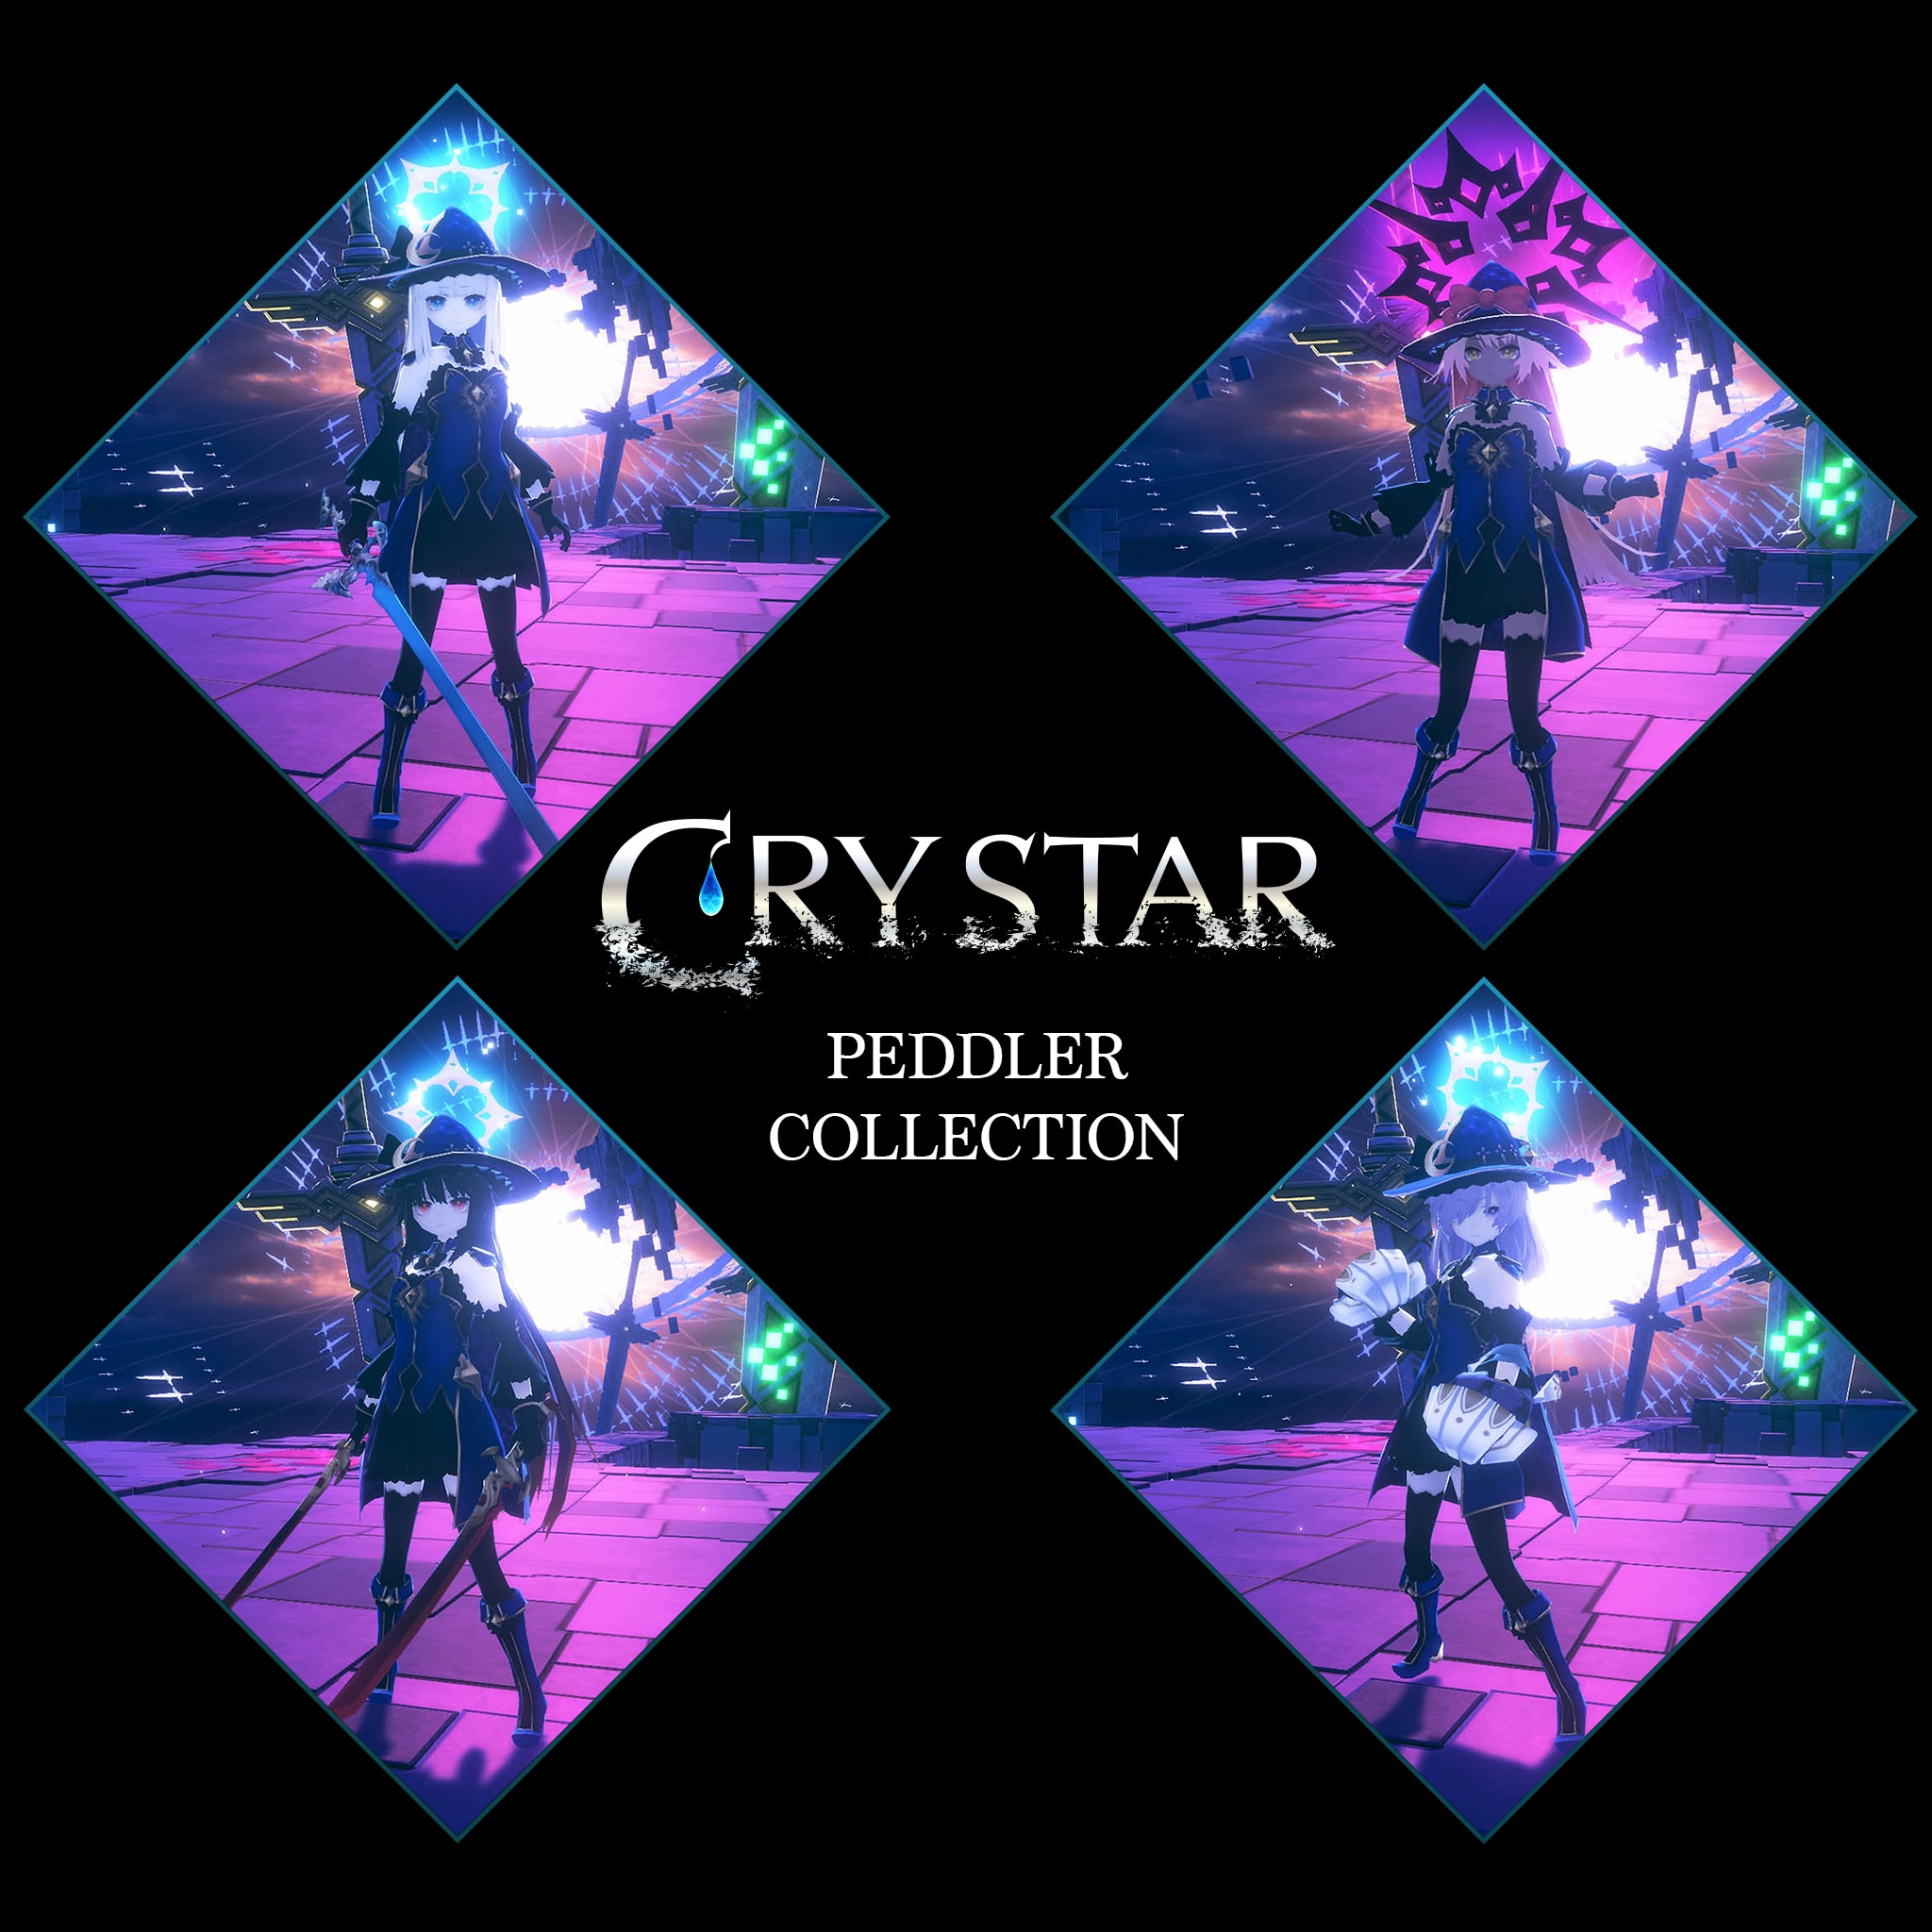 CRYSTAR Peddler Collection